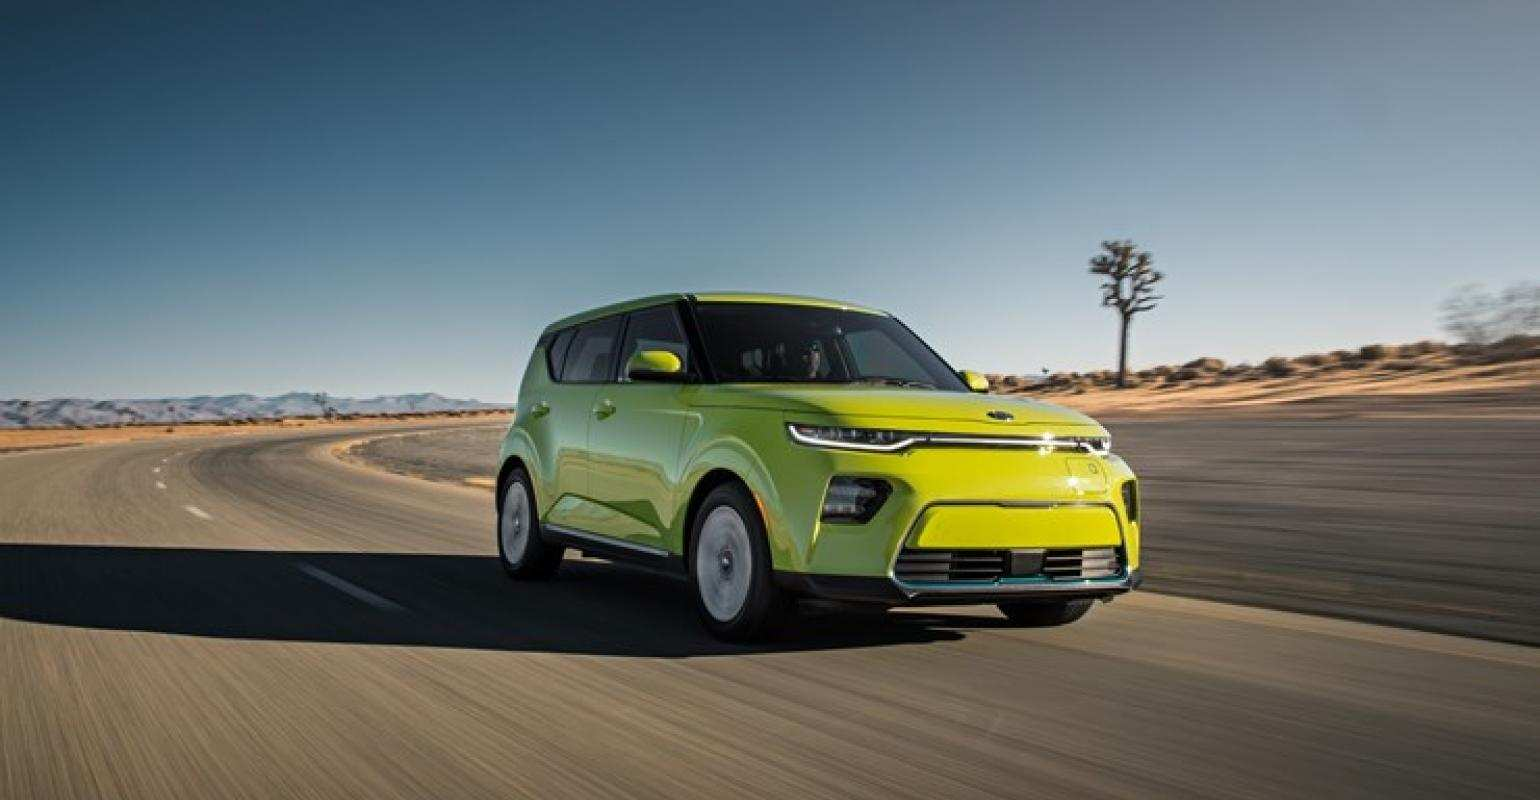 73 All New 2020 Kia Soul Ev Release Date Release Date And Concept